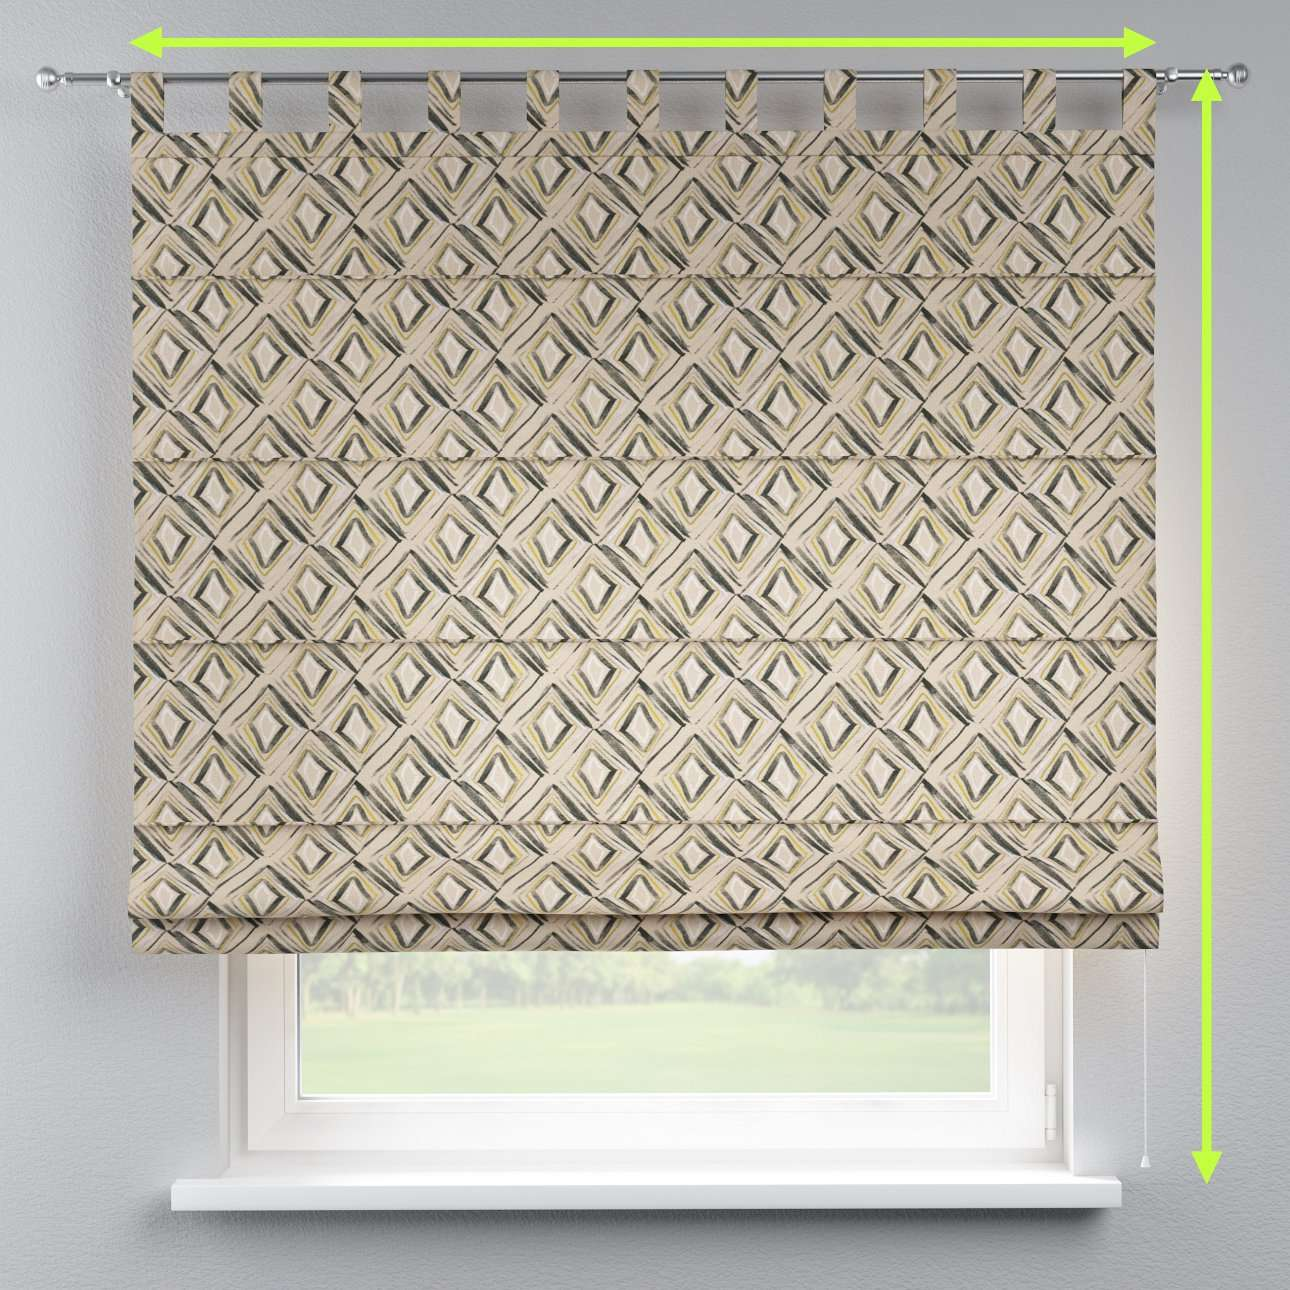 Verona tab top roman blind in collection Londres, fabric: 140-46